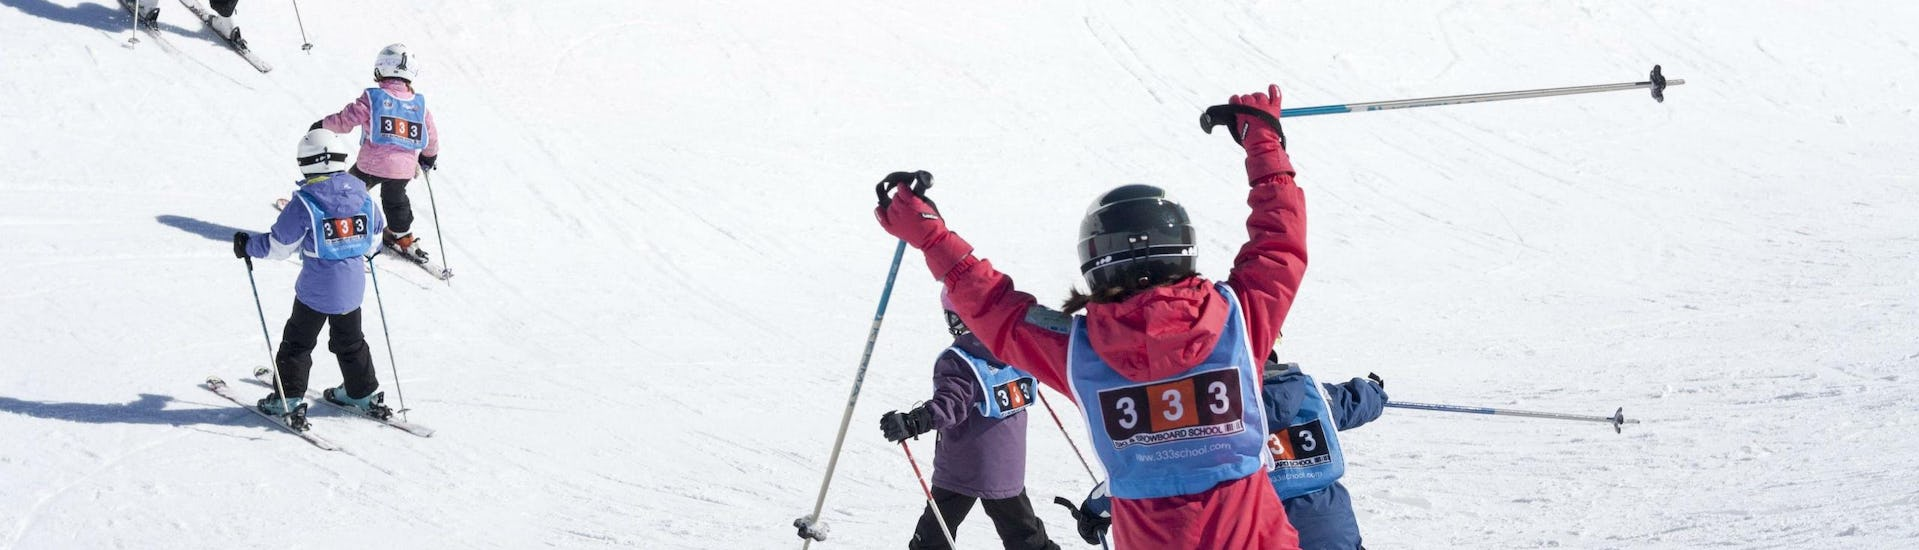 A group of kids enjoying their Kids Ski Lessons (5-17 years) - Morning - All Levels with the ski school 333 Ski School in the ski resort of Tignes.